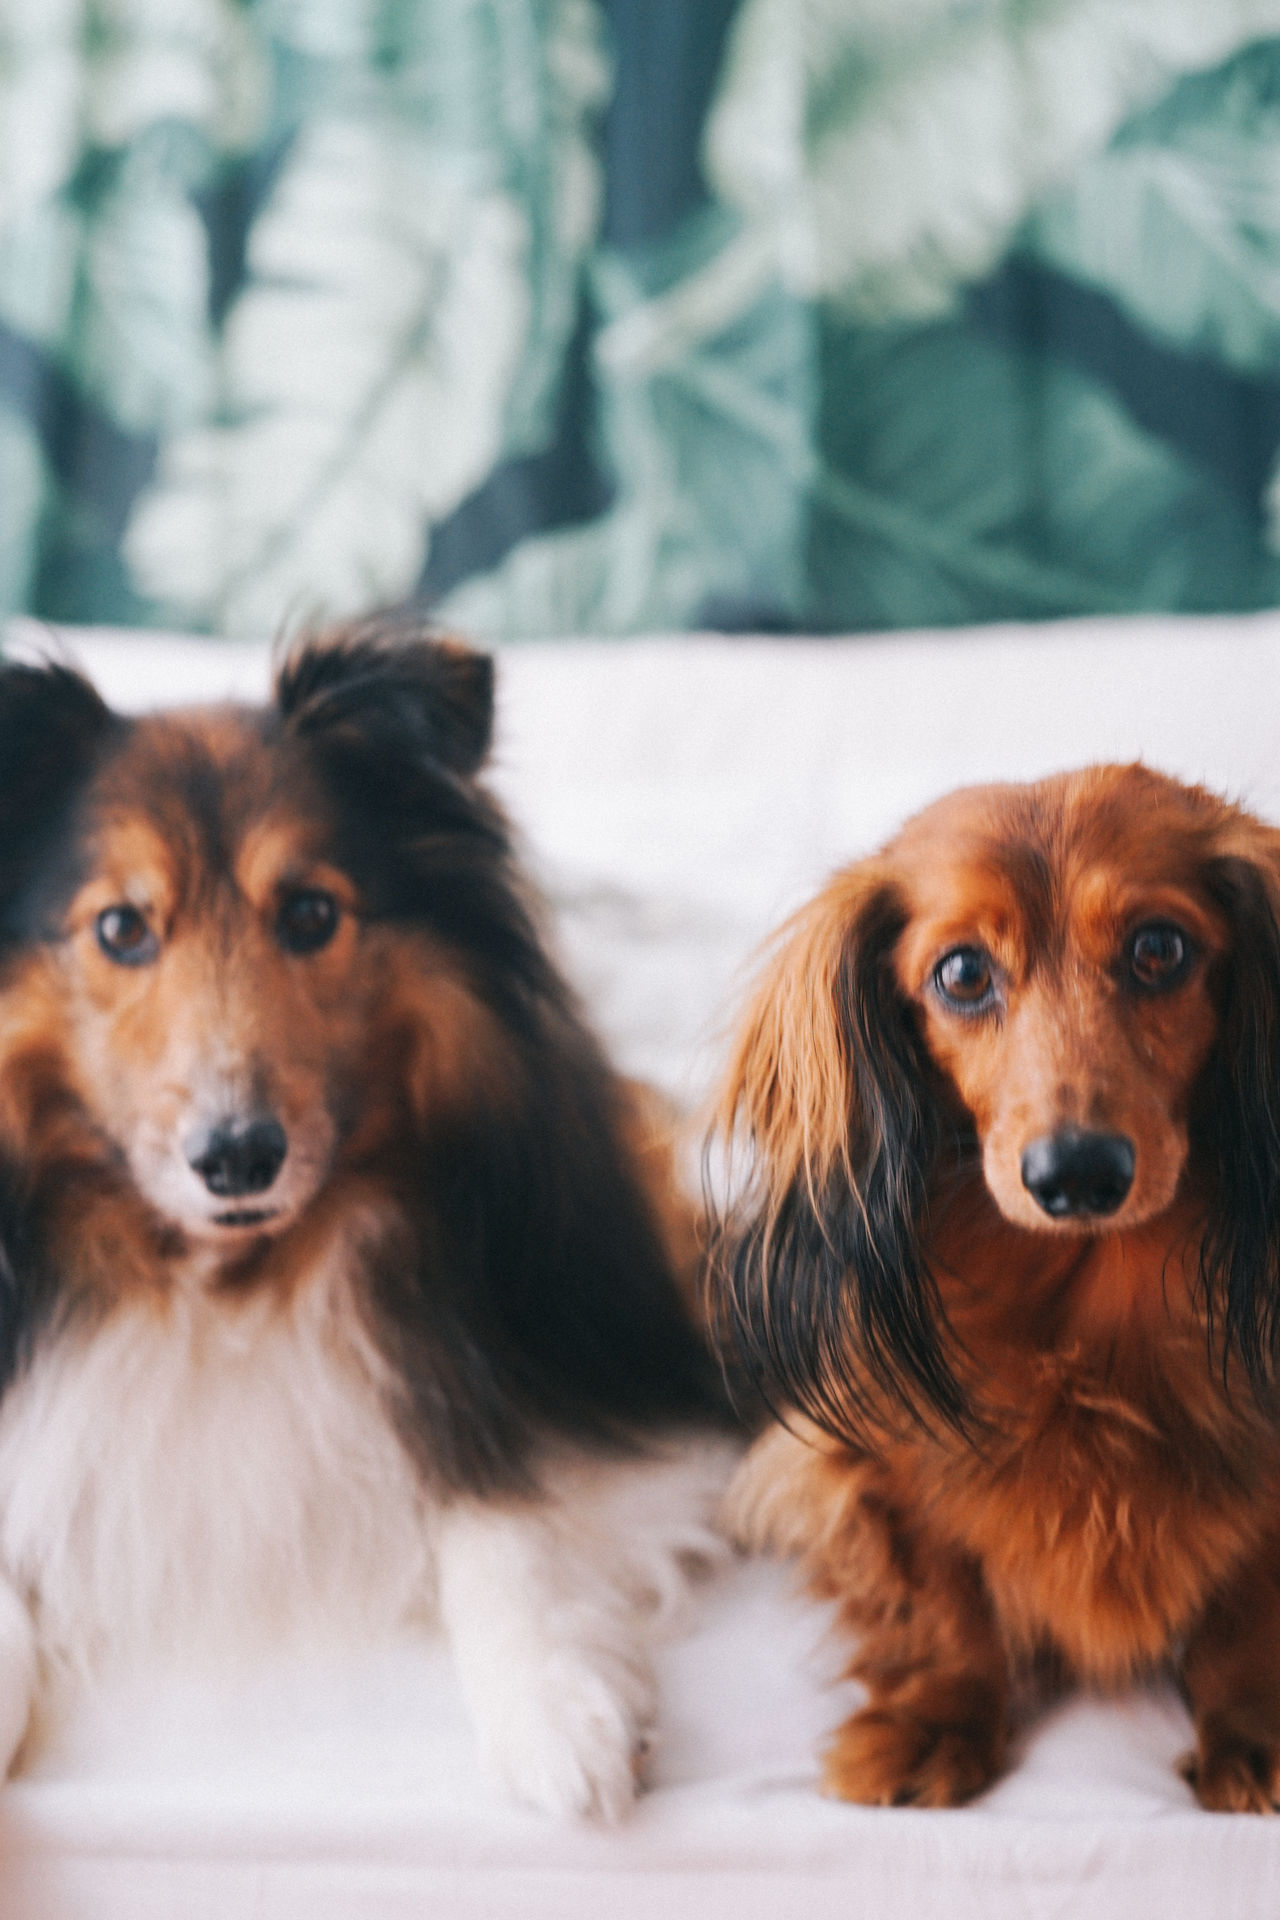 Animal Themes Close-up Dachshund Day Dog Domestic Animals Indoors  Looking At Camera Mammal No People Pets Portrait Sausagedog Sheepdog Sheltie Two Dogs